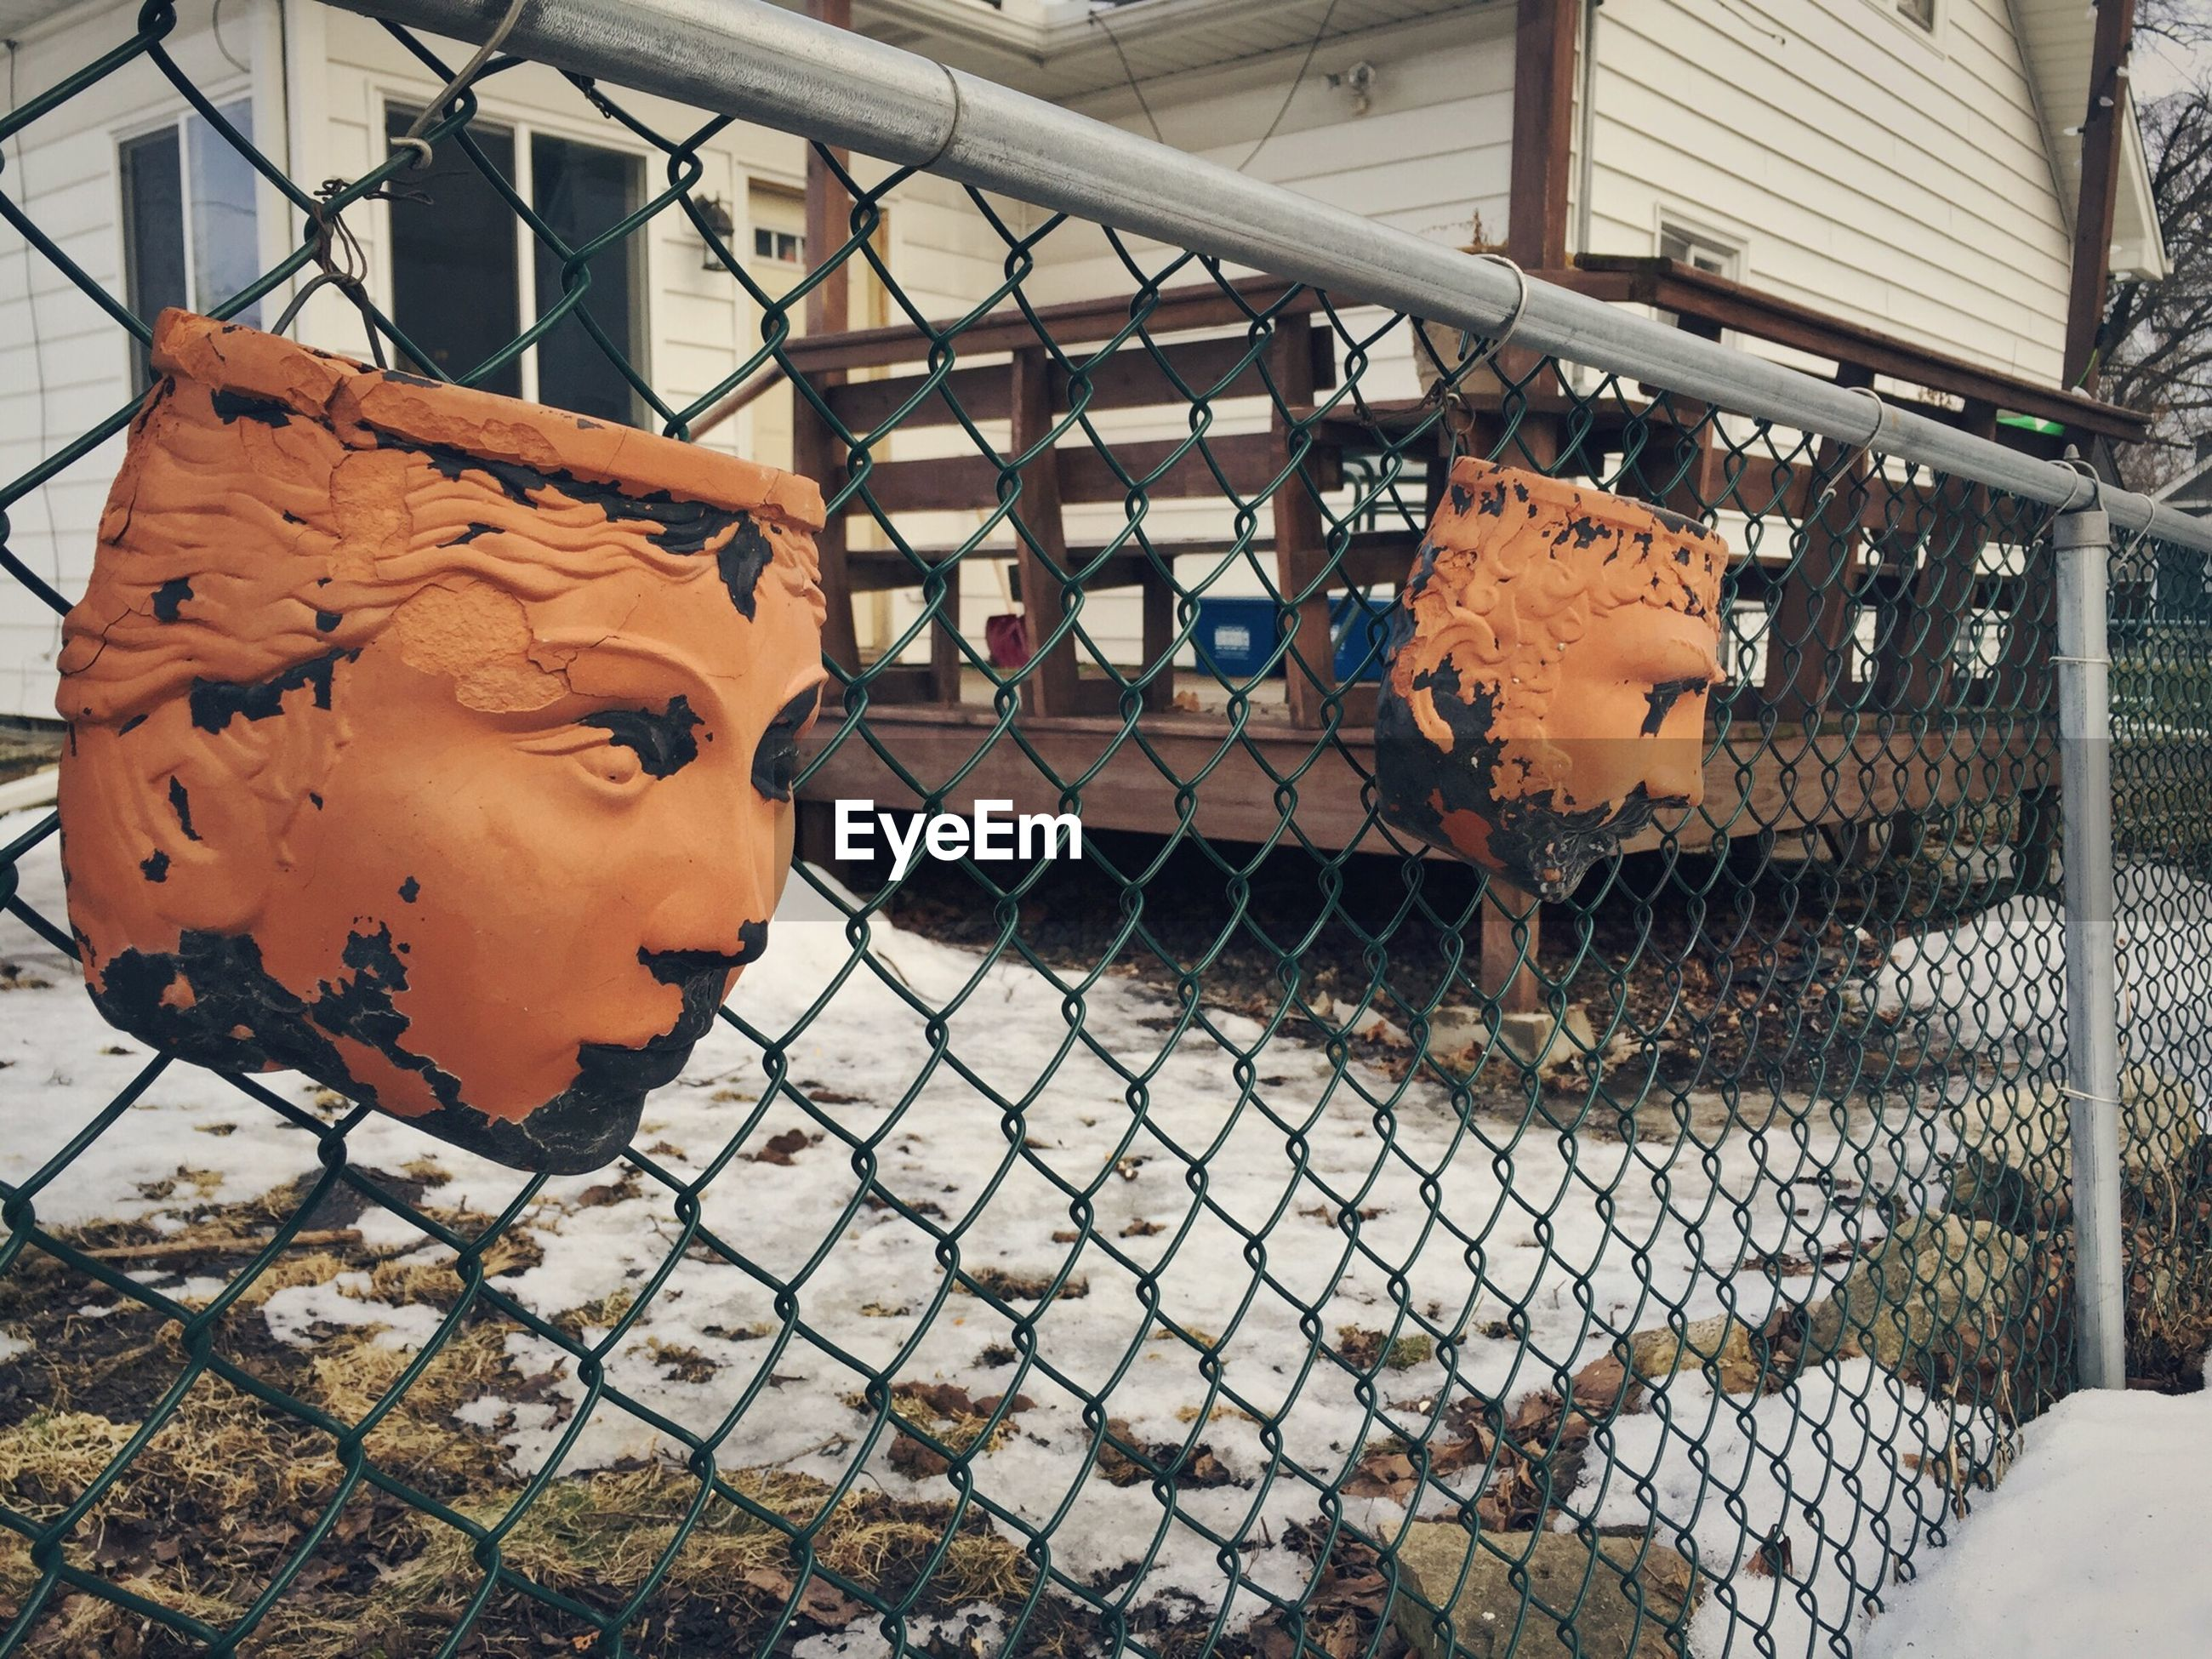 Sculptures on chainlink fence by house during winter